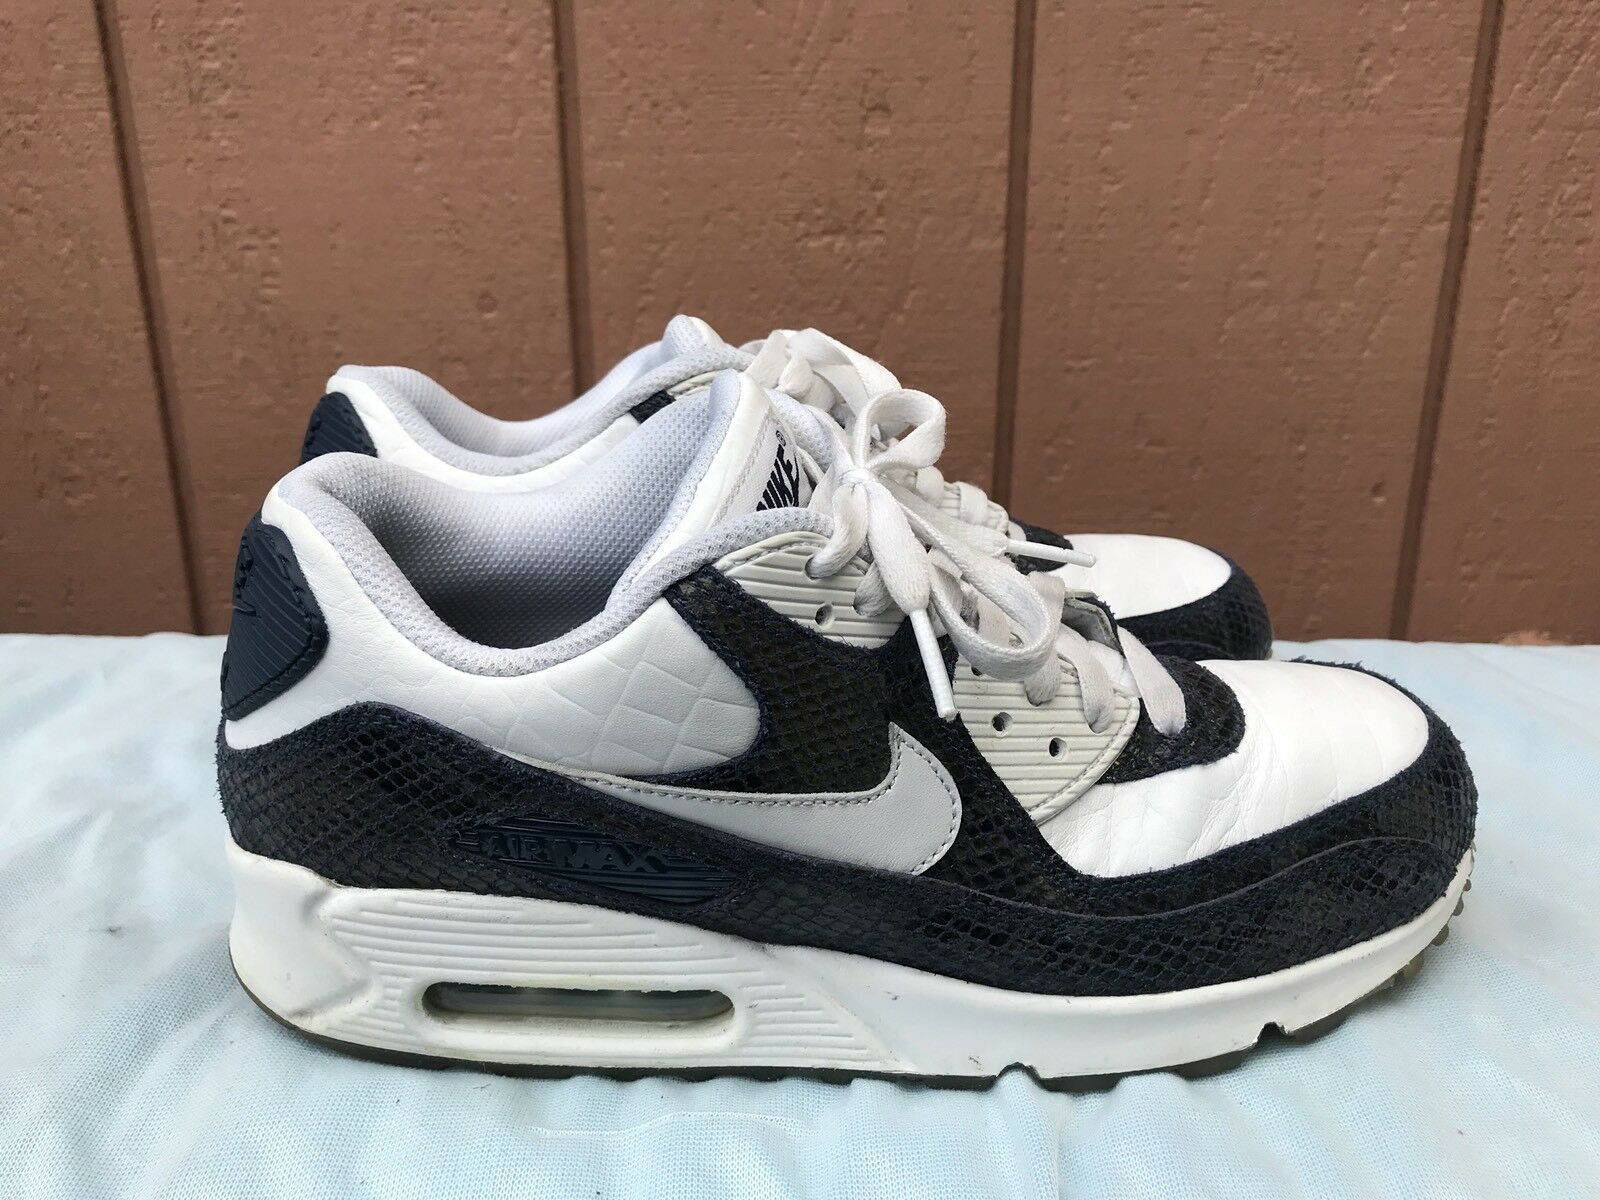 Nike iD Air Max 90 Men's 8.5 Animal Snakeskin White Blue 708279-991 Sneakers A4